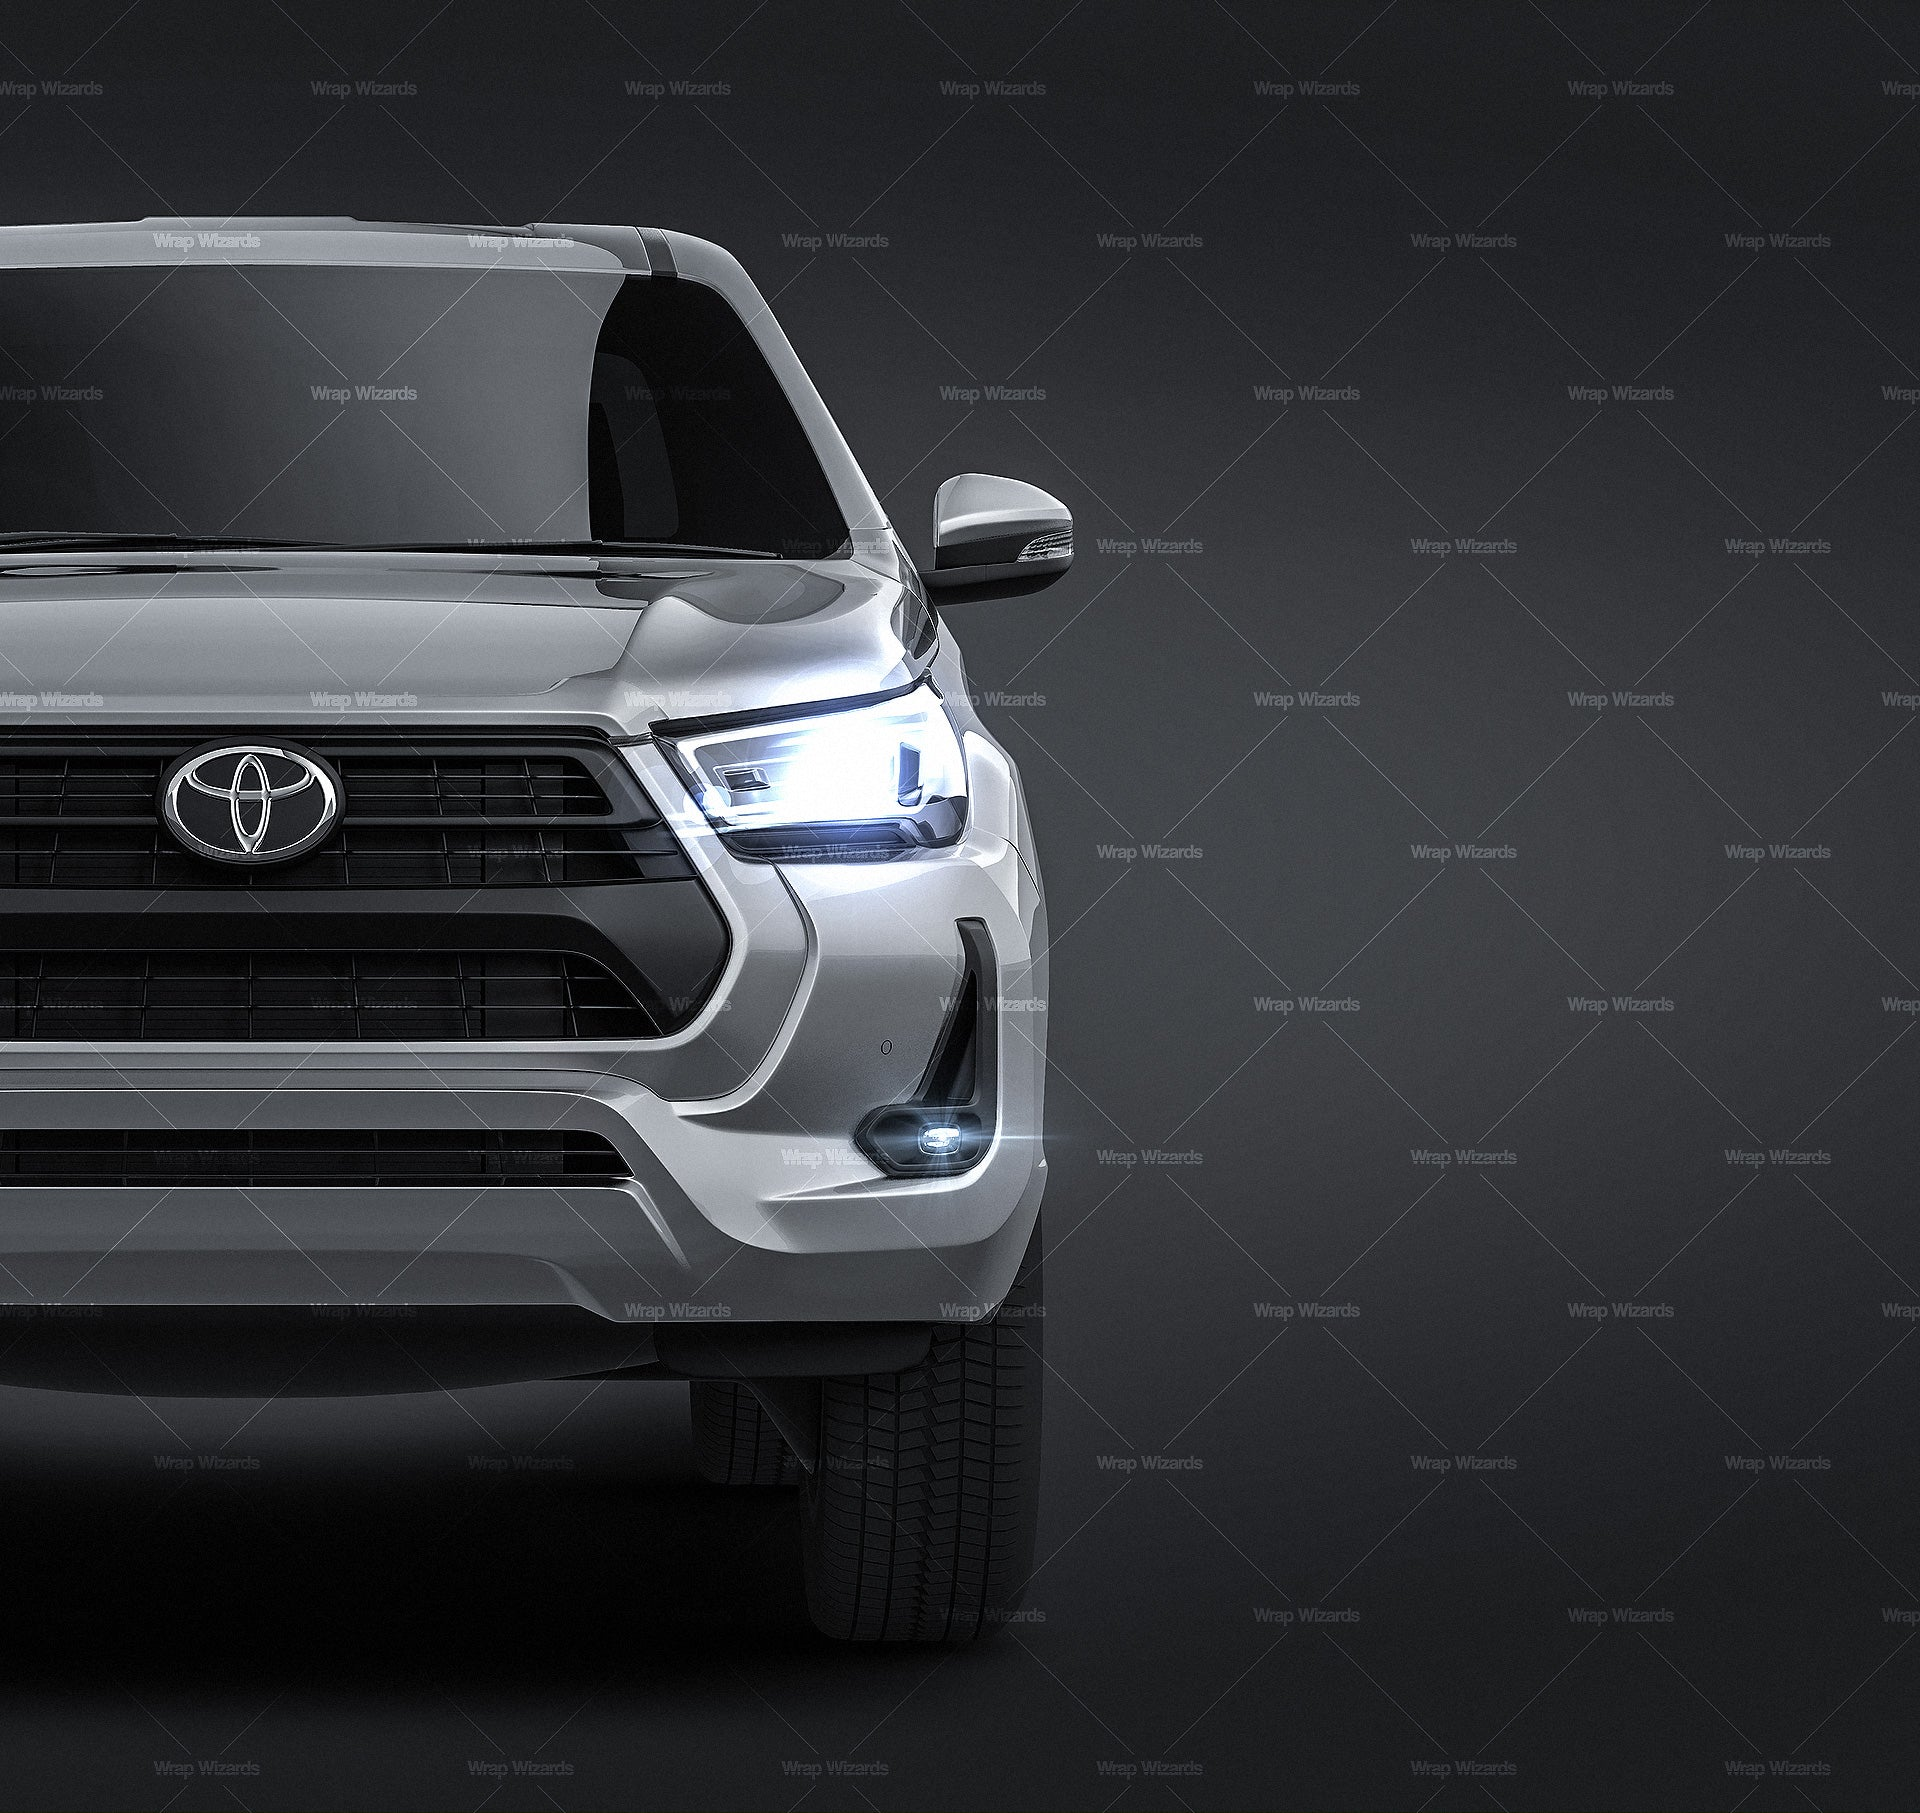 Toyota Hilux Double Cab 2020 all sides Car Mockup Template.psd